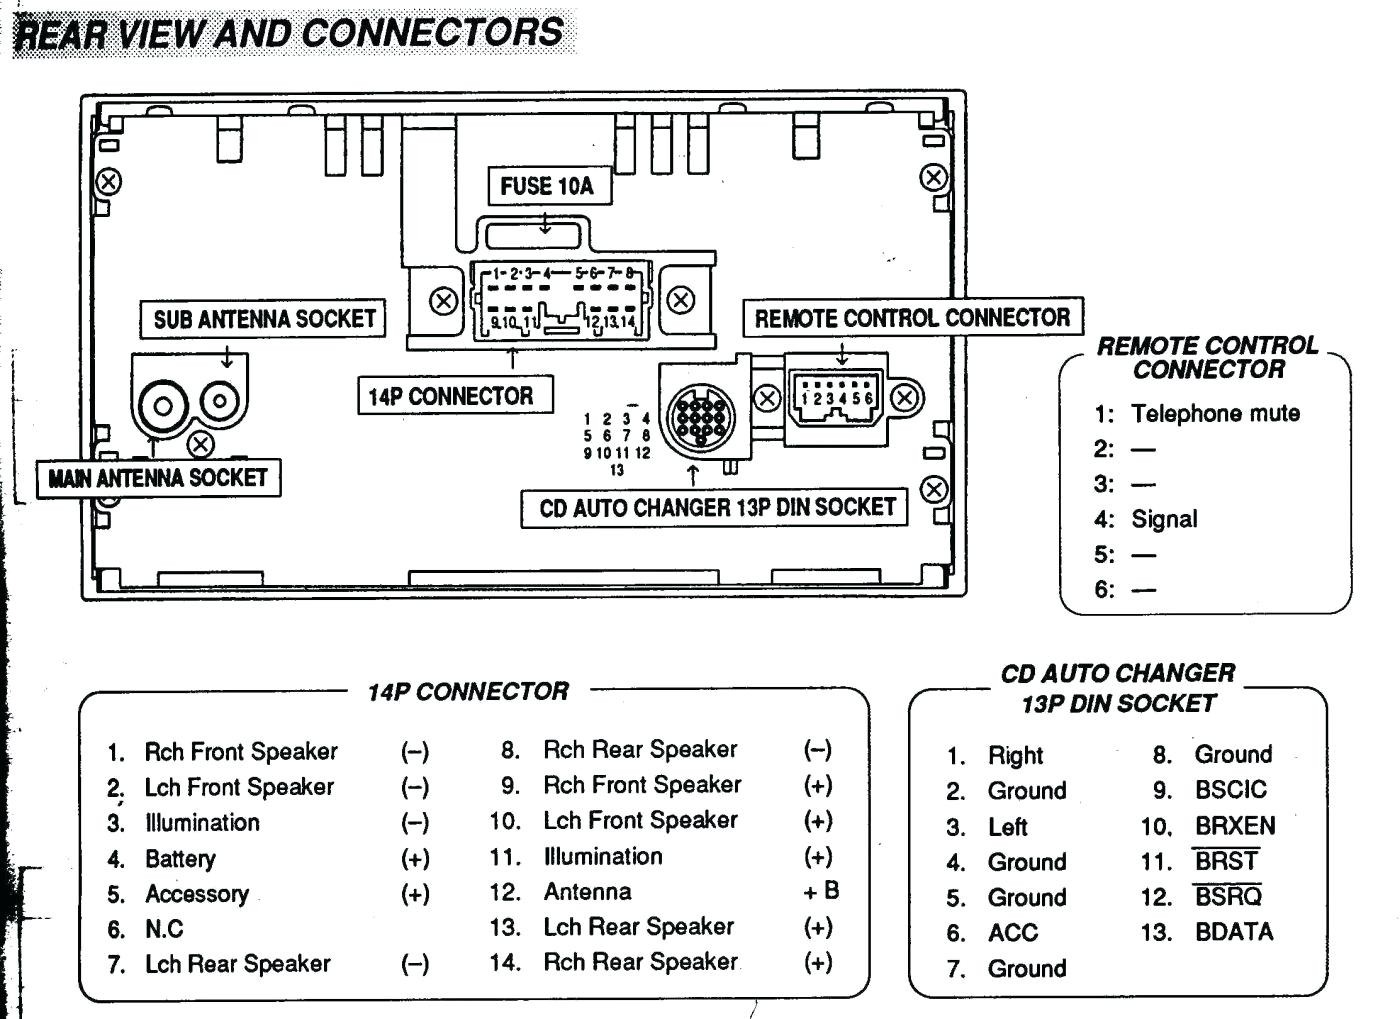 Amazing Kenwood Kvt 514 Wiring Diagram Image - Wiring Schematics and ...